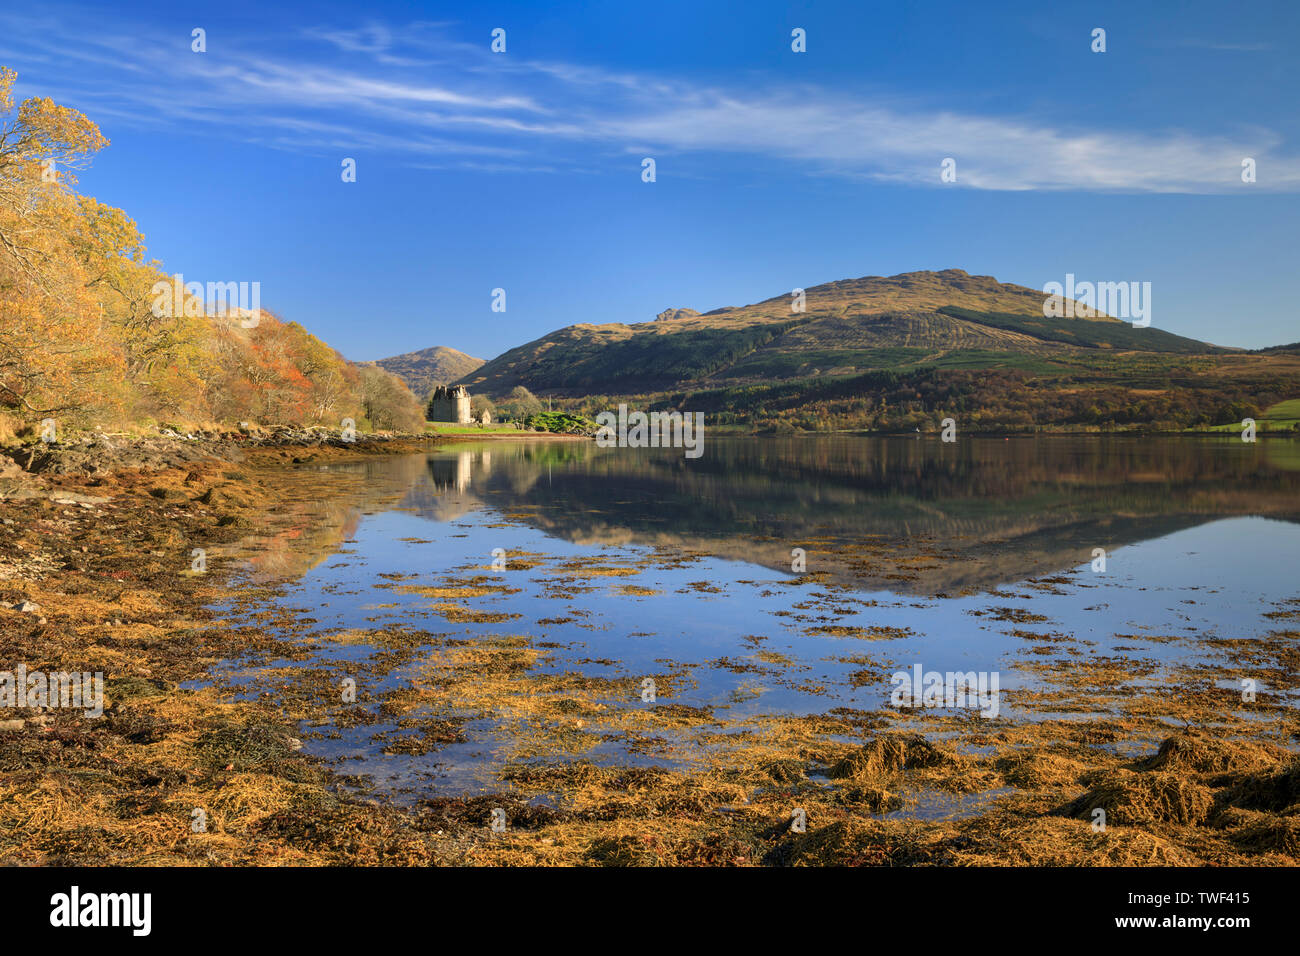 Dunderave Castle reflected in Loch Fyne. - Stock Image